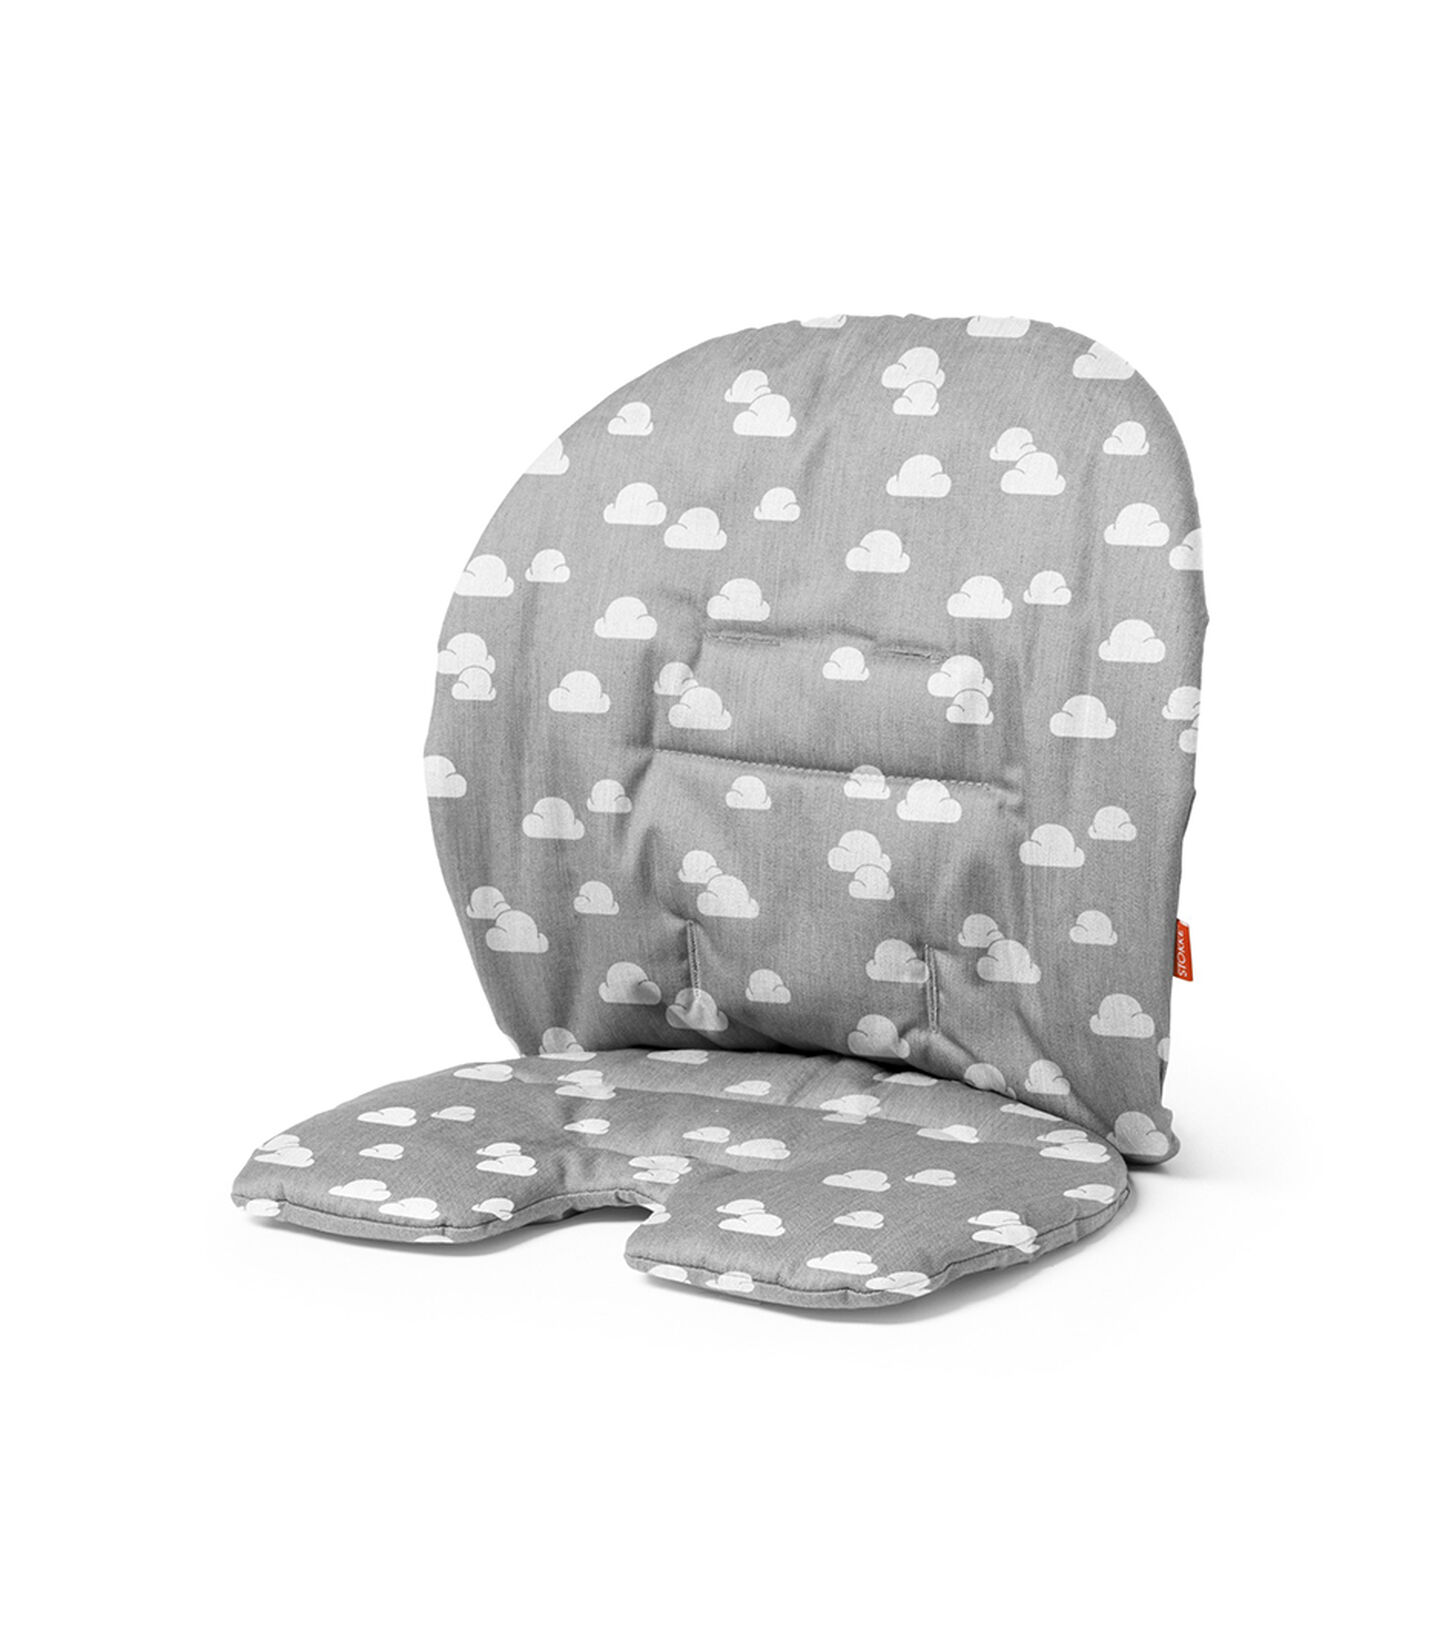 @Home; Accessories; Cushion; Grey Clouds; Photo; Plain; Stokke Steps view 1